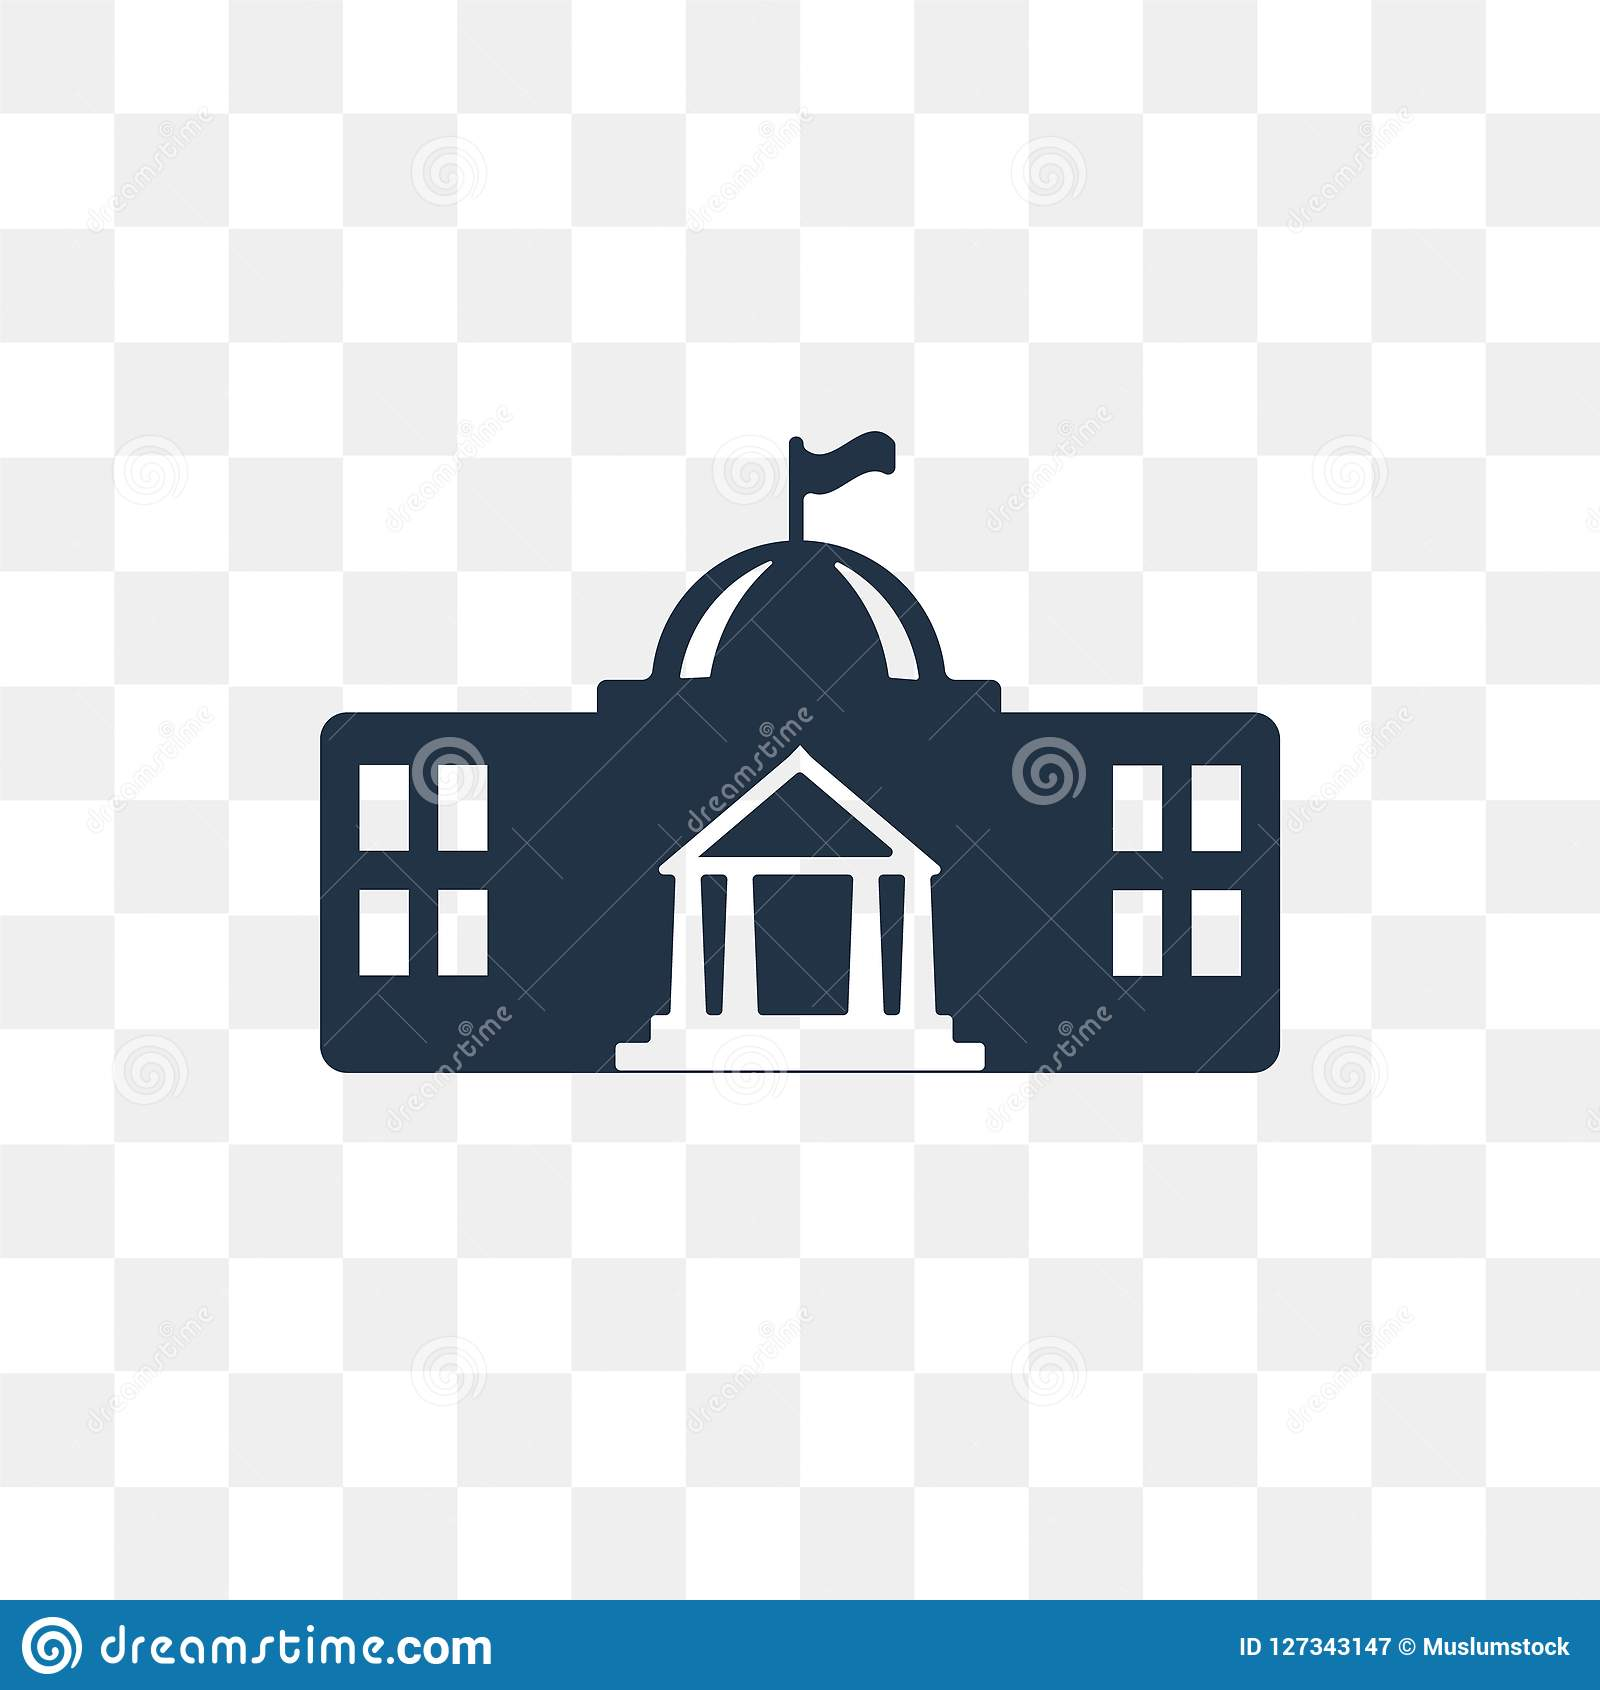 White house vector icon isolated on transparent background, Whit